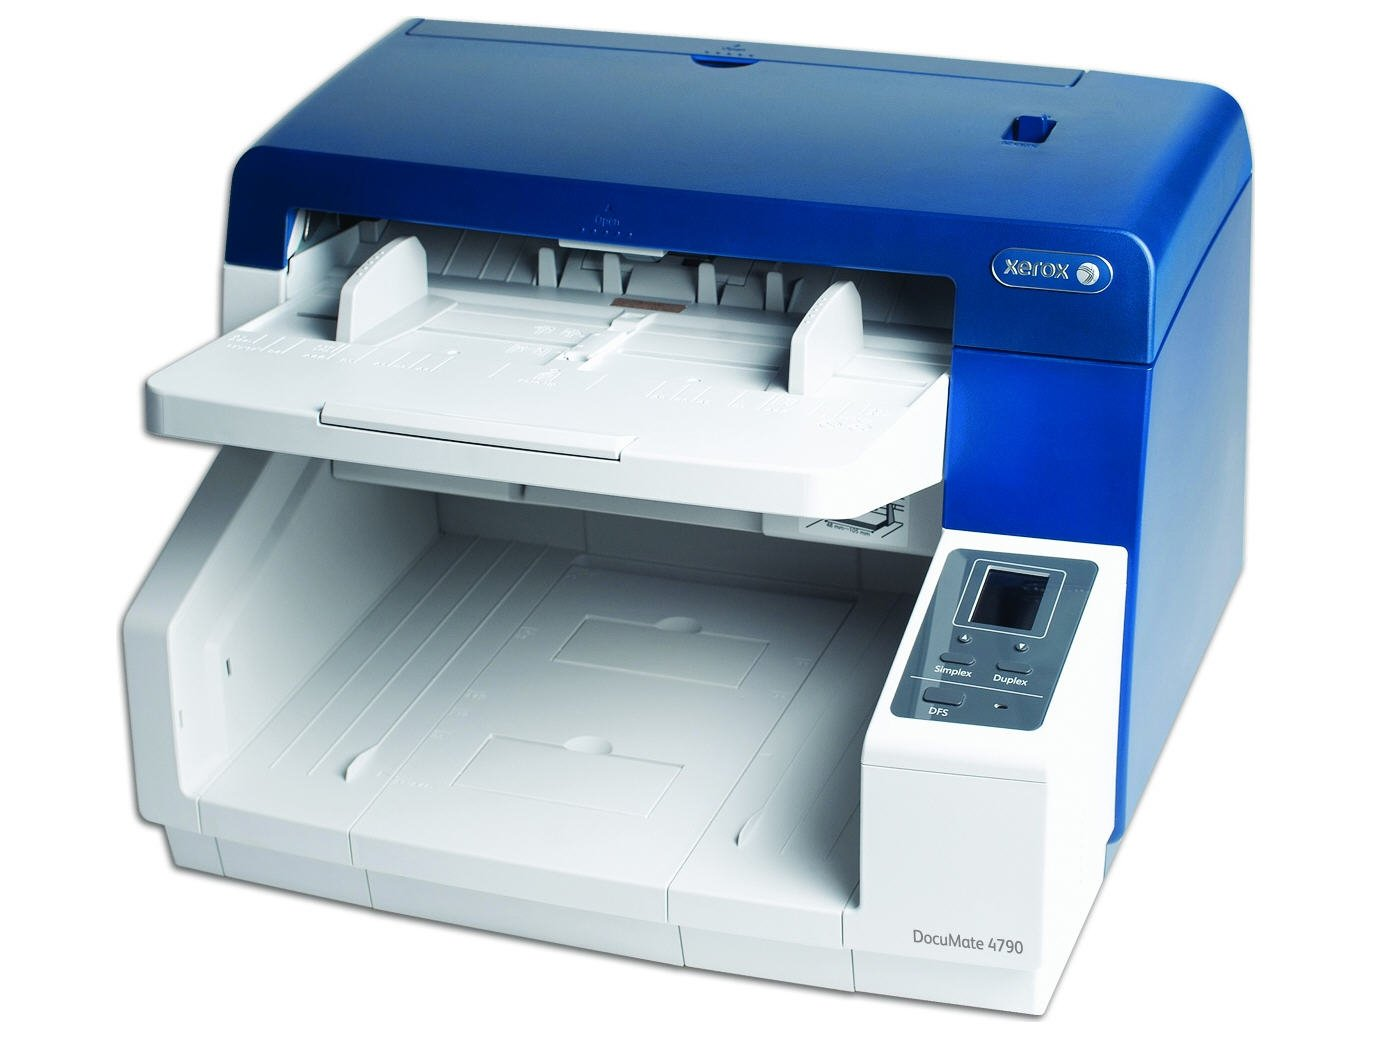 Xerox DocuMate 4790 (XDM47905D-WU) A3-sized Adf Document Scaner with Detection by Xerox